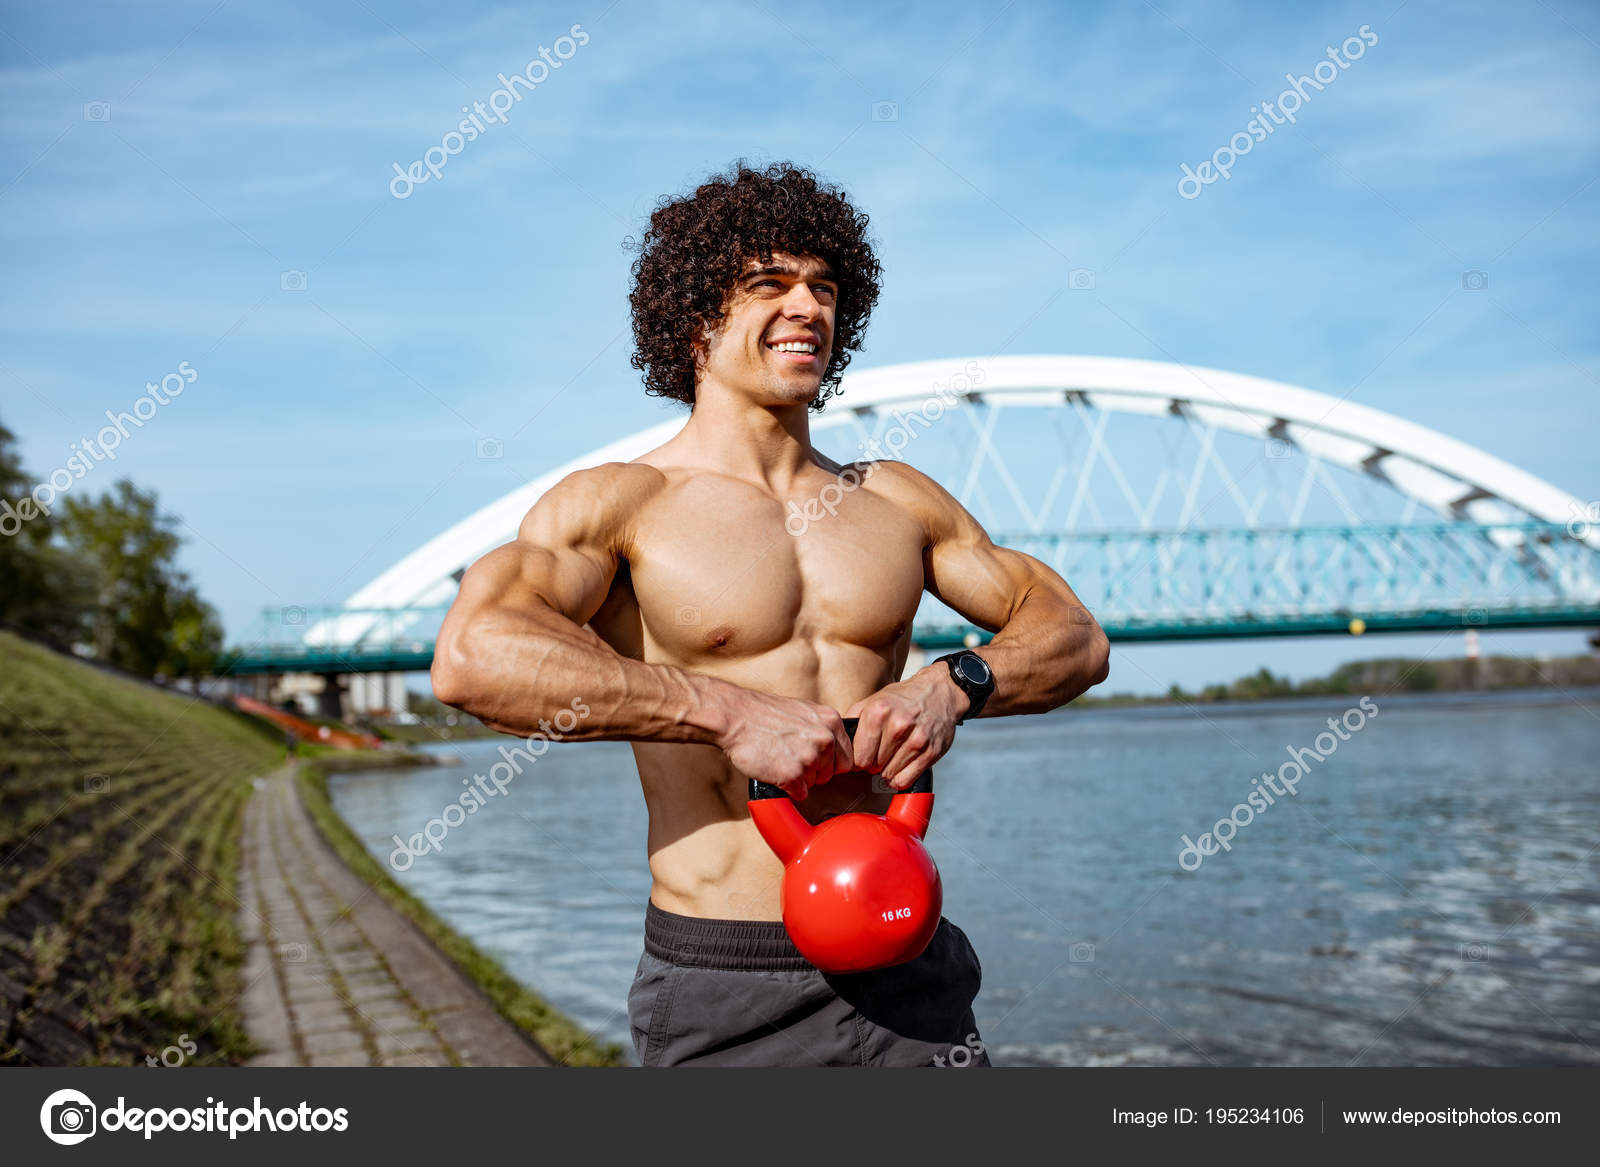 Kettlebell Bodybuilding Bodybuilder Doing Strong Fit Body Training Kettlebell River